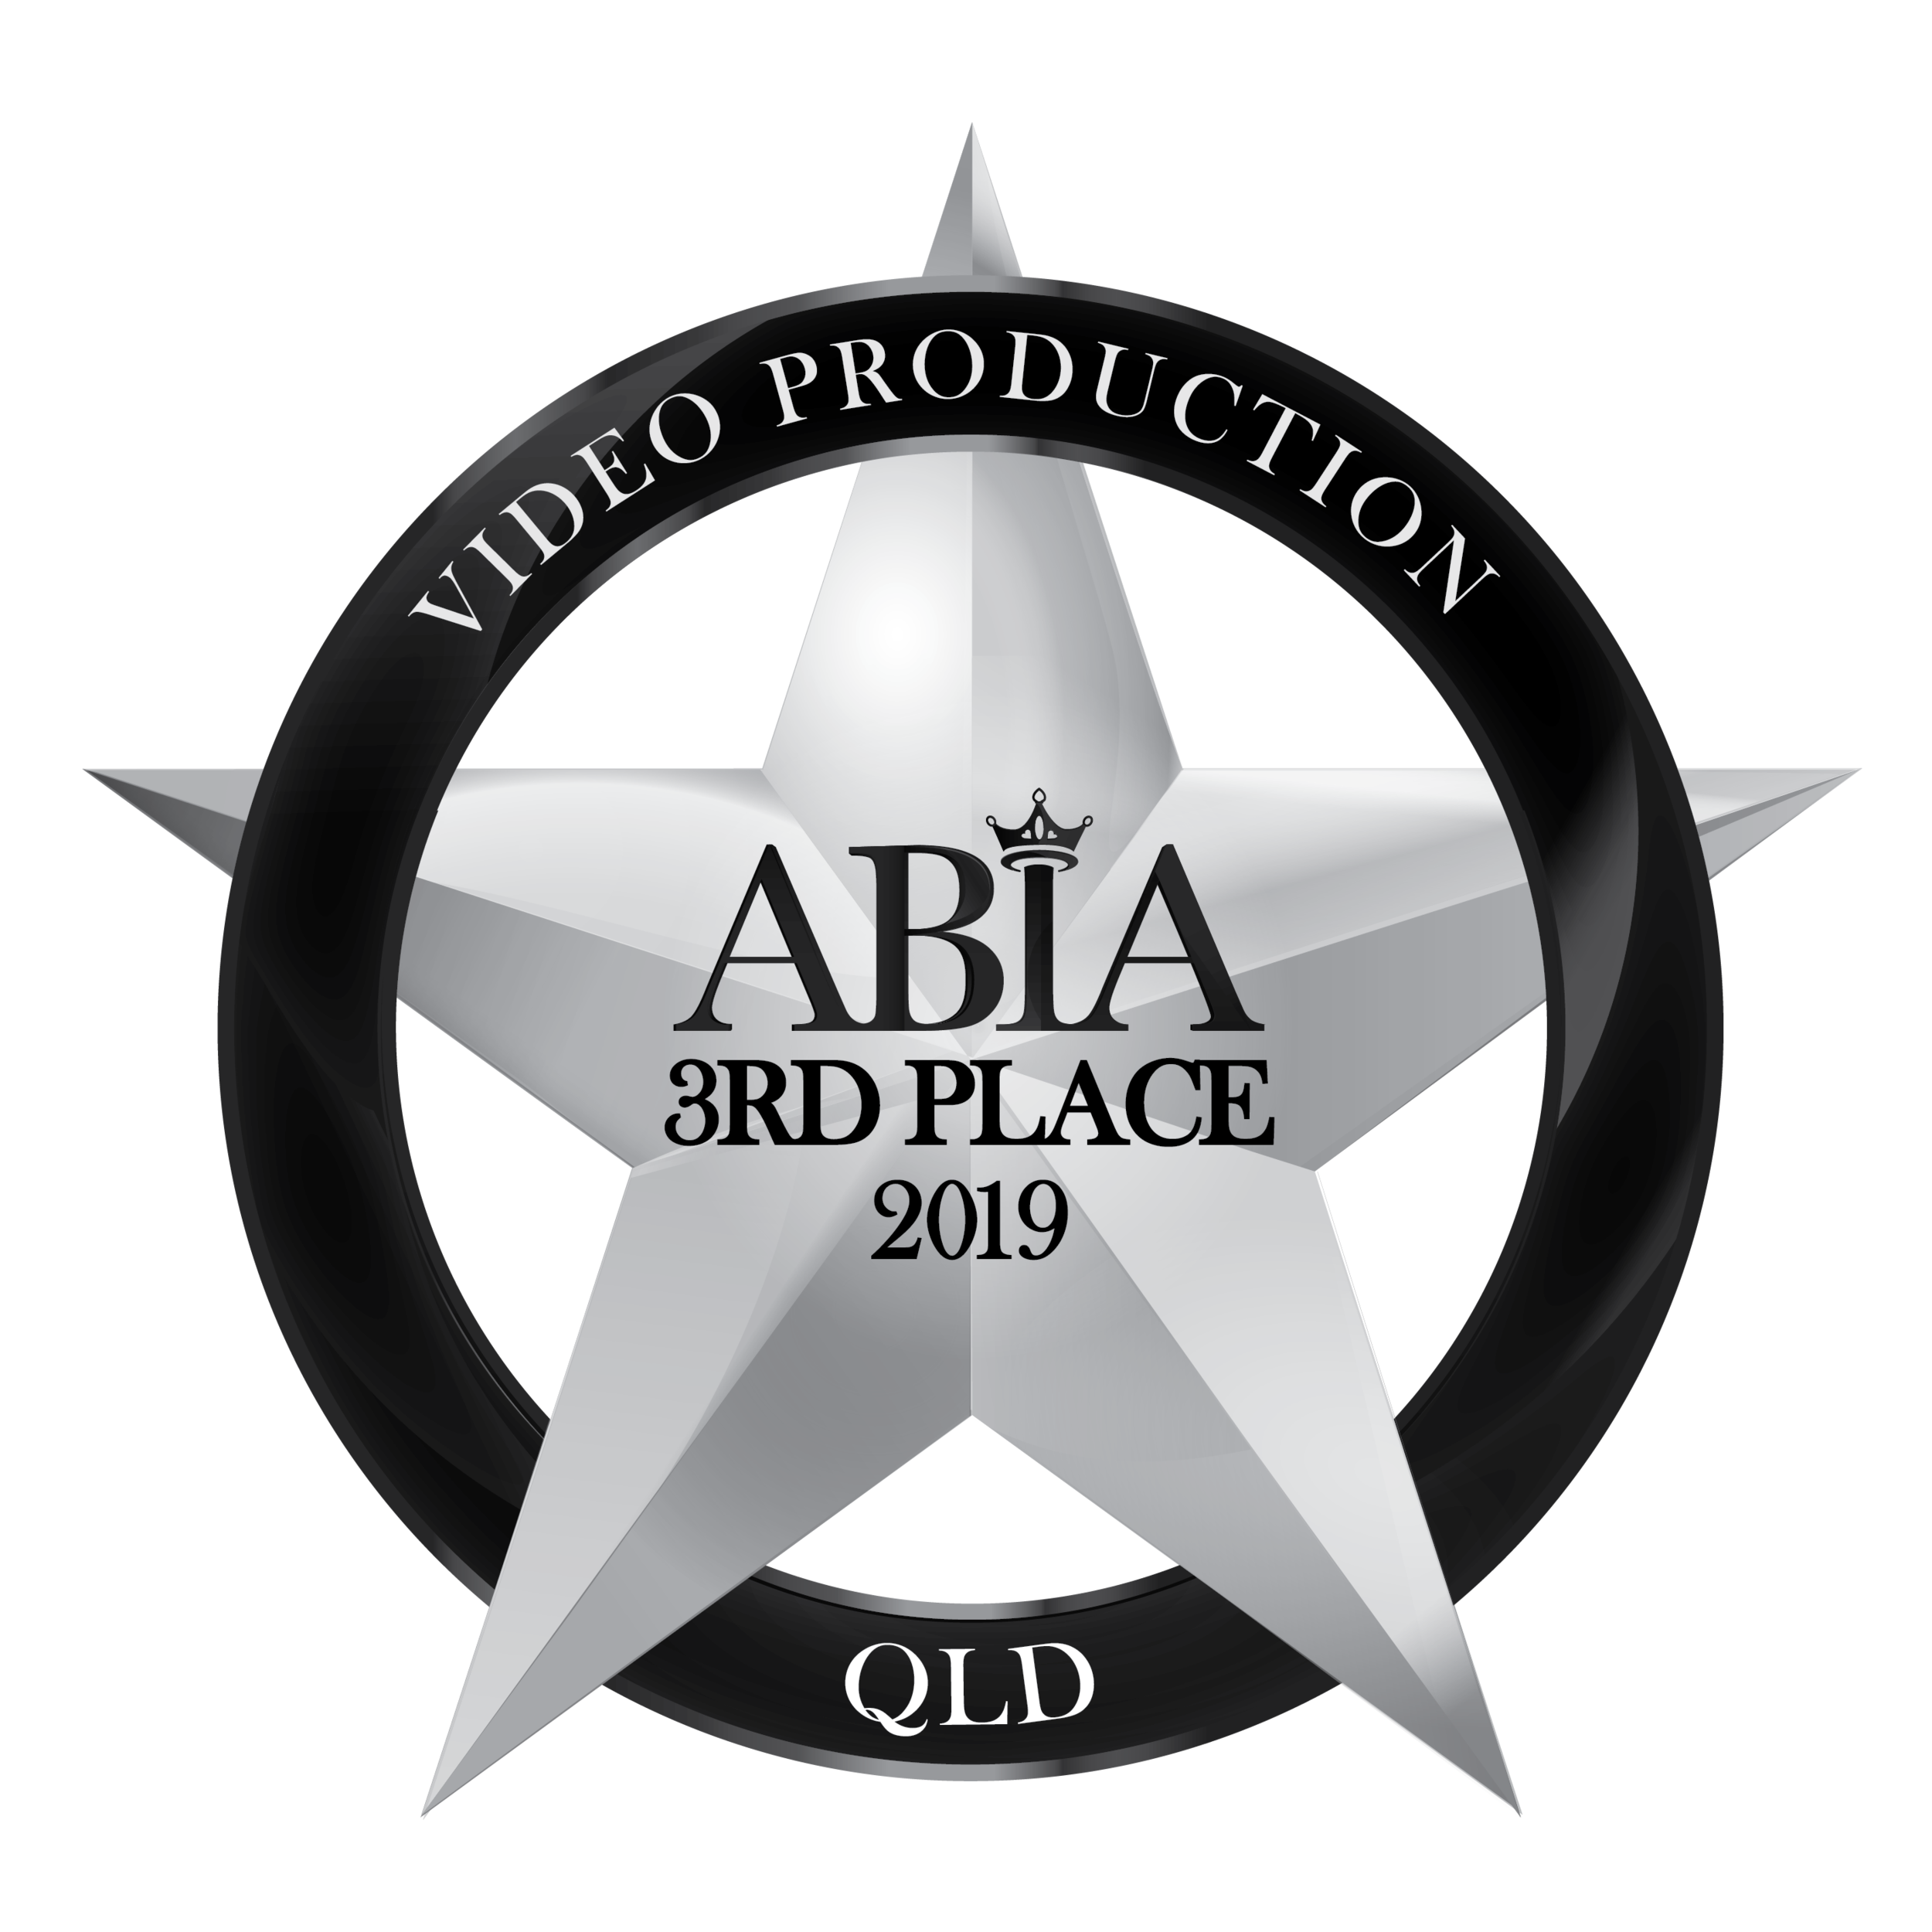 2019-QLD-ABIA-Award-Logo-VideoProduction_3RD PLACE.png